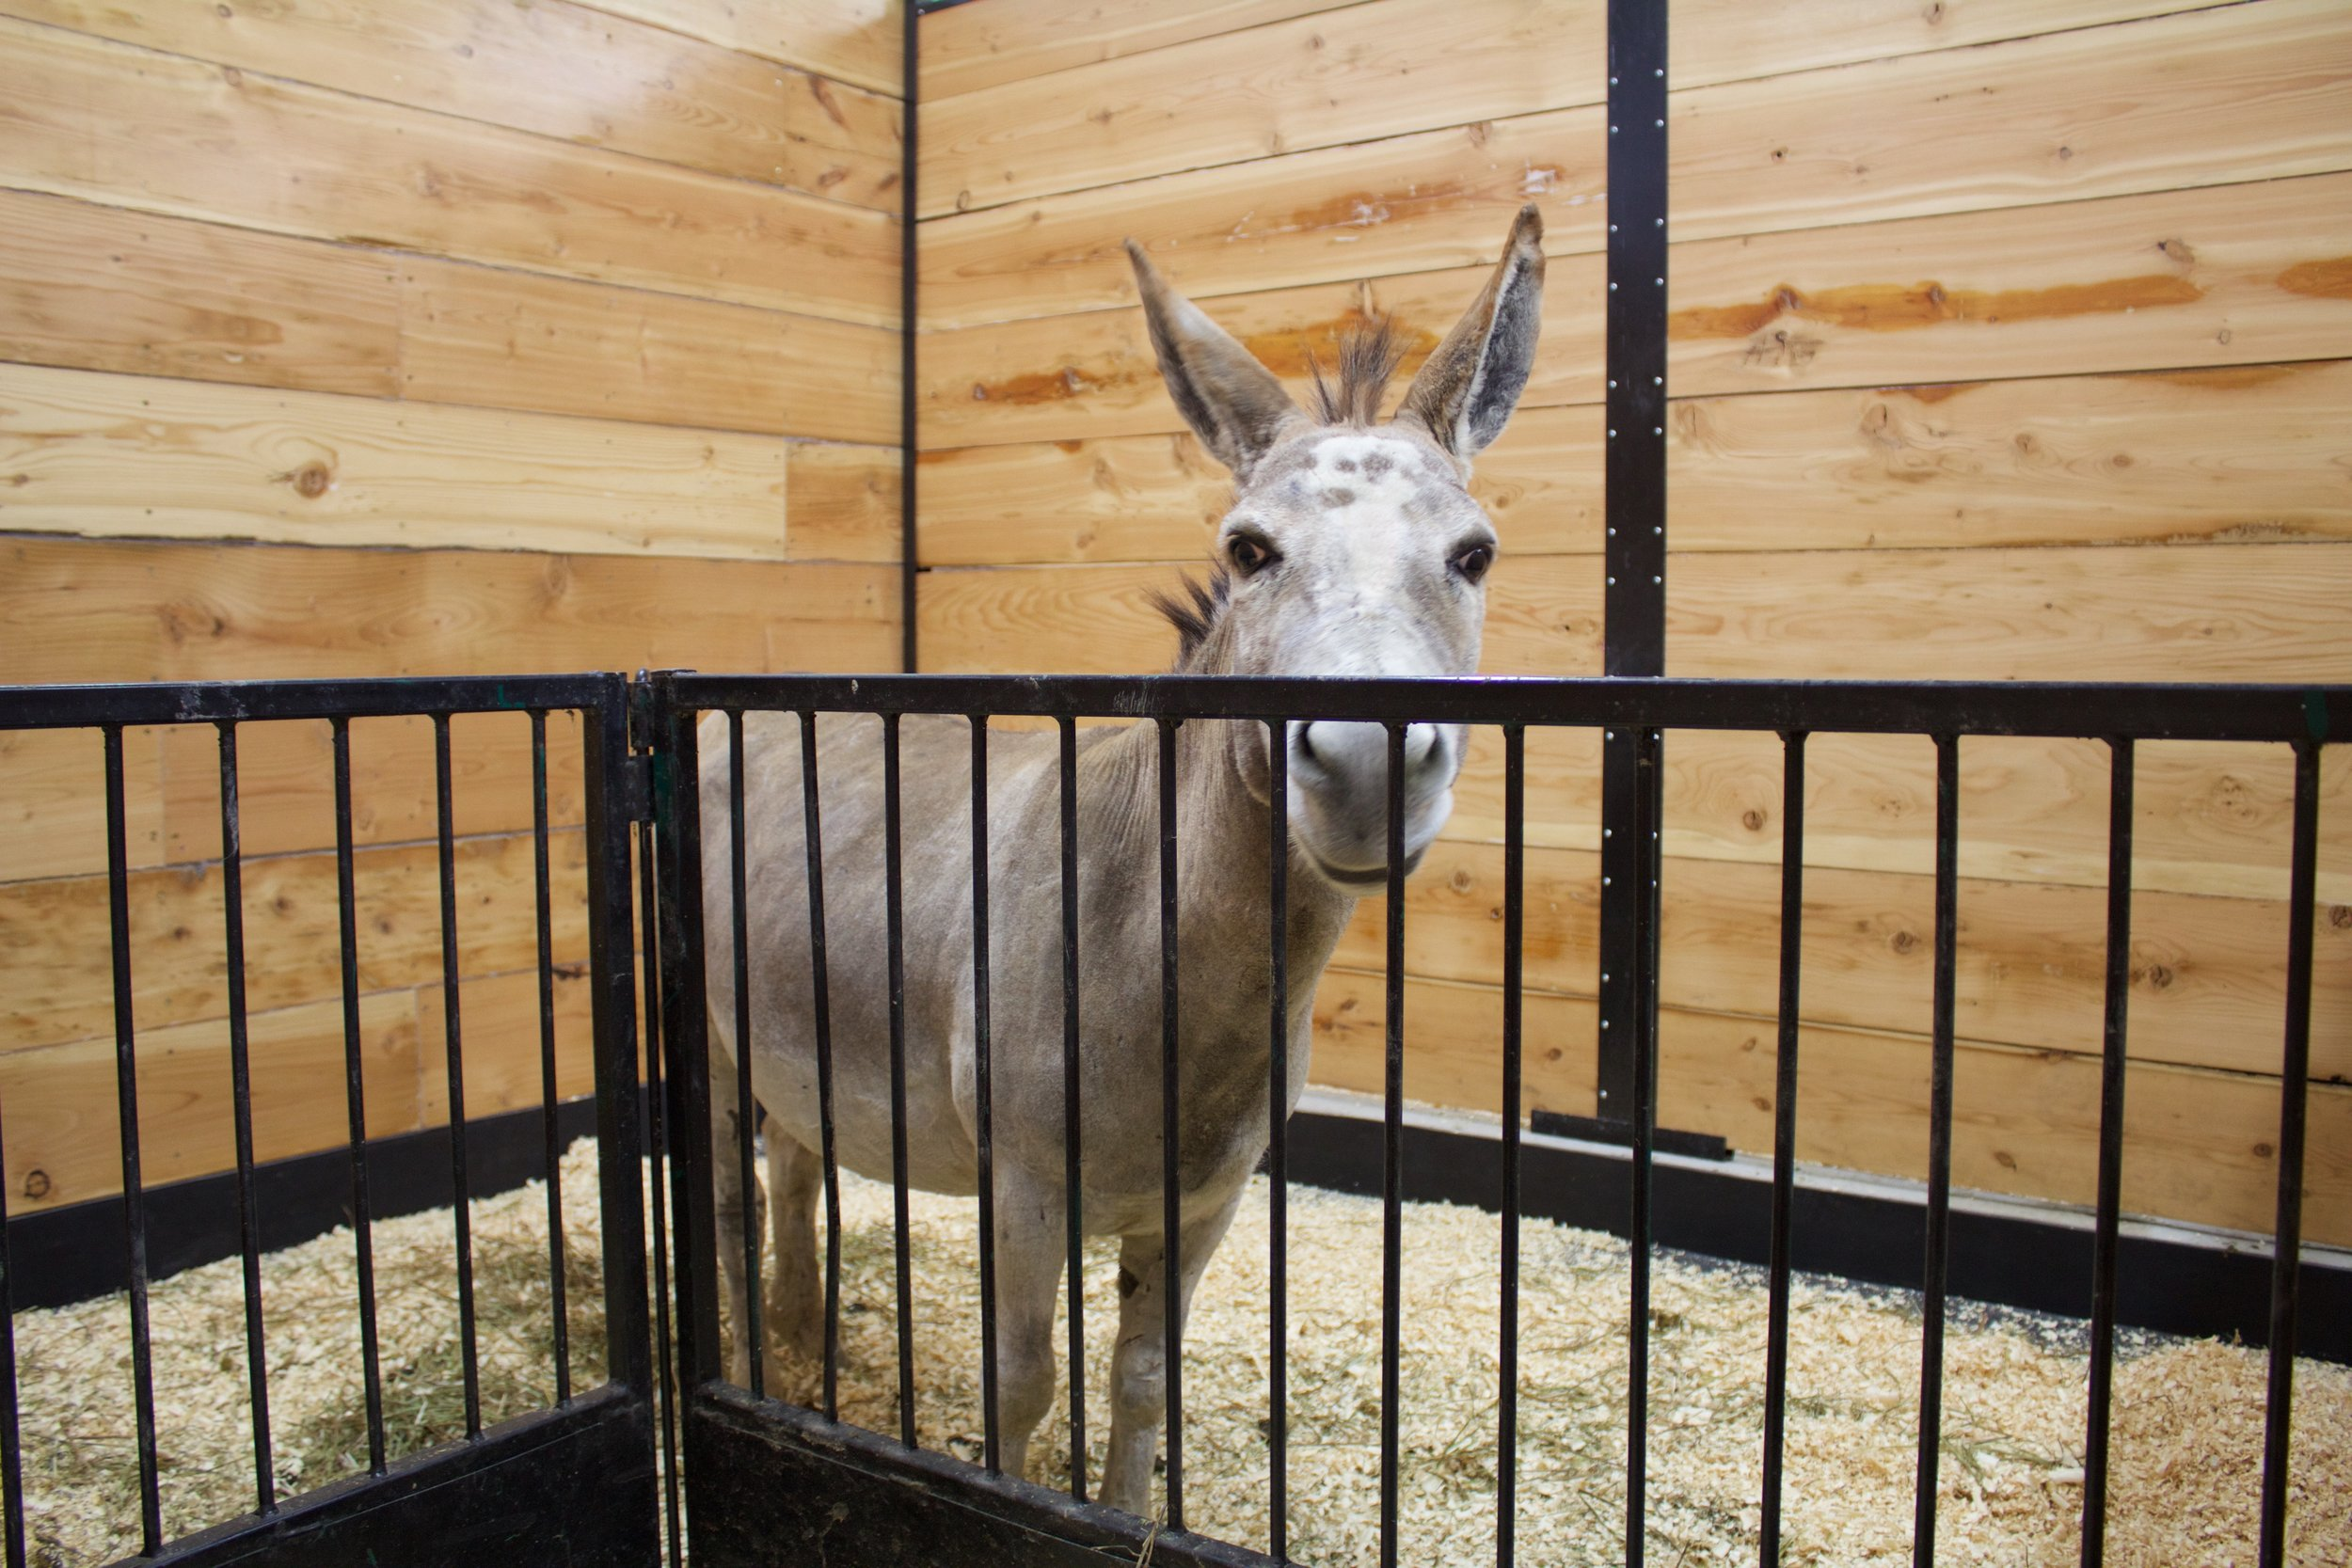 Fred the Miniature Donkey at the Petting Zoo